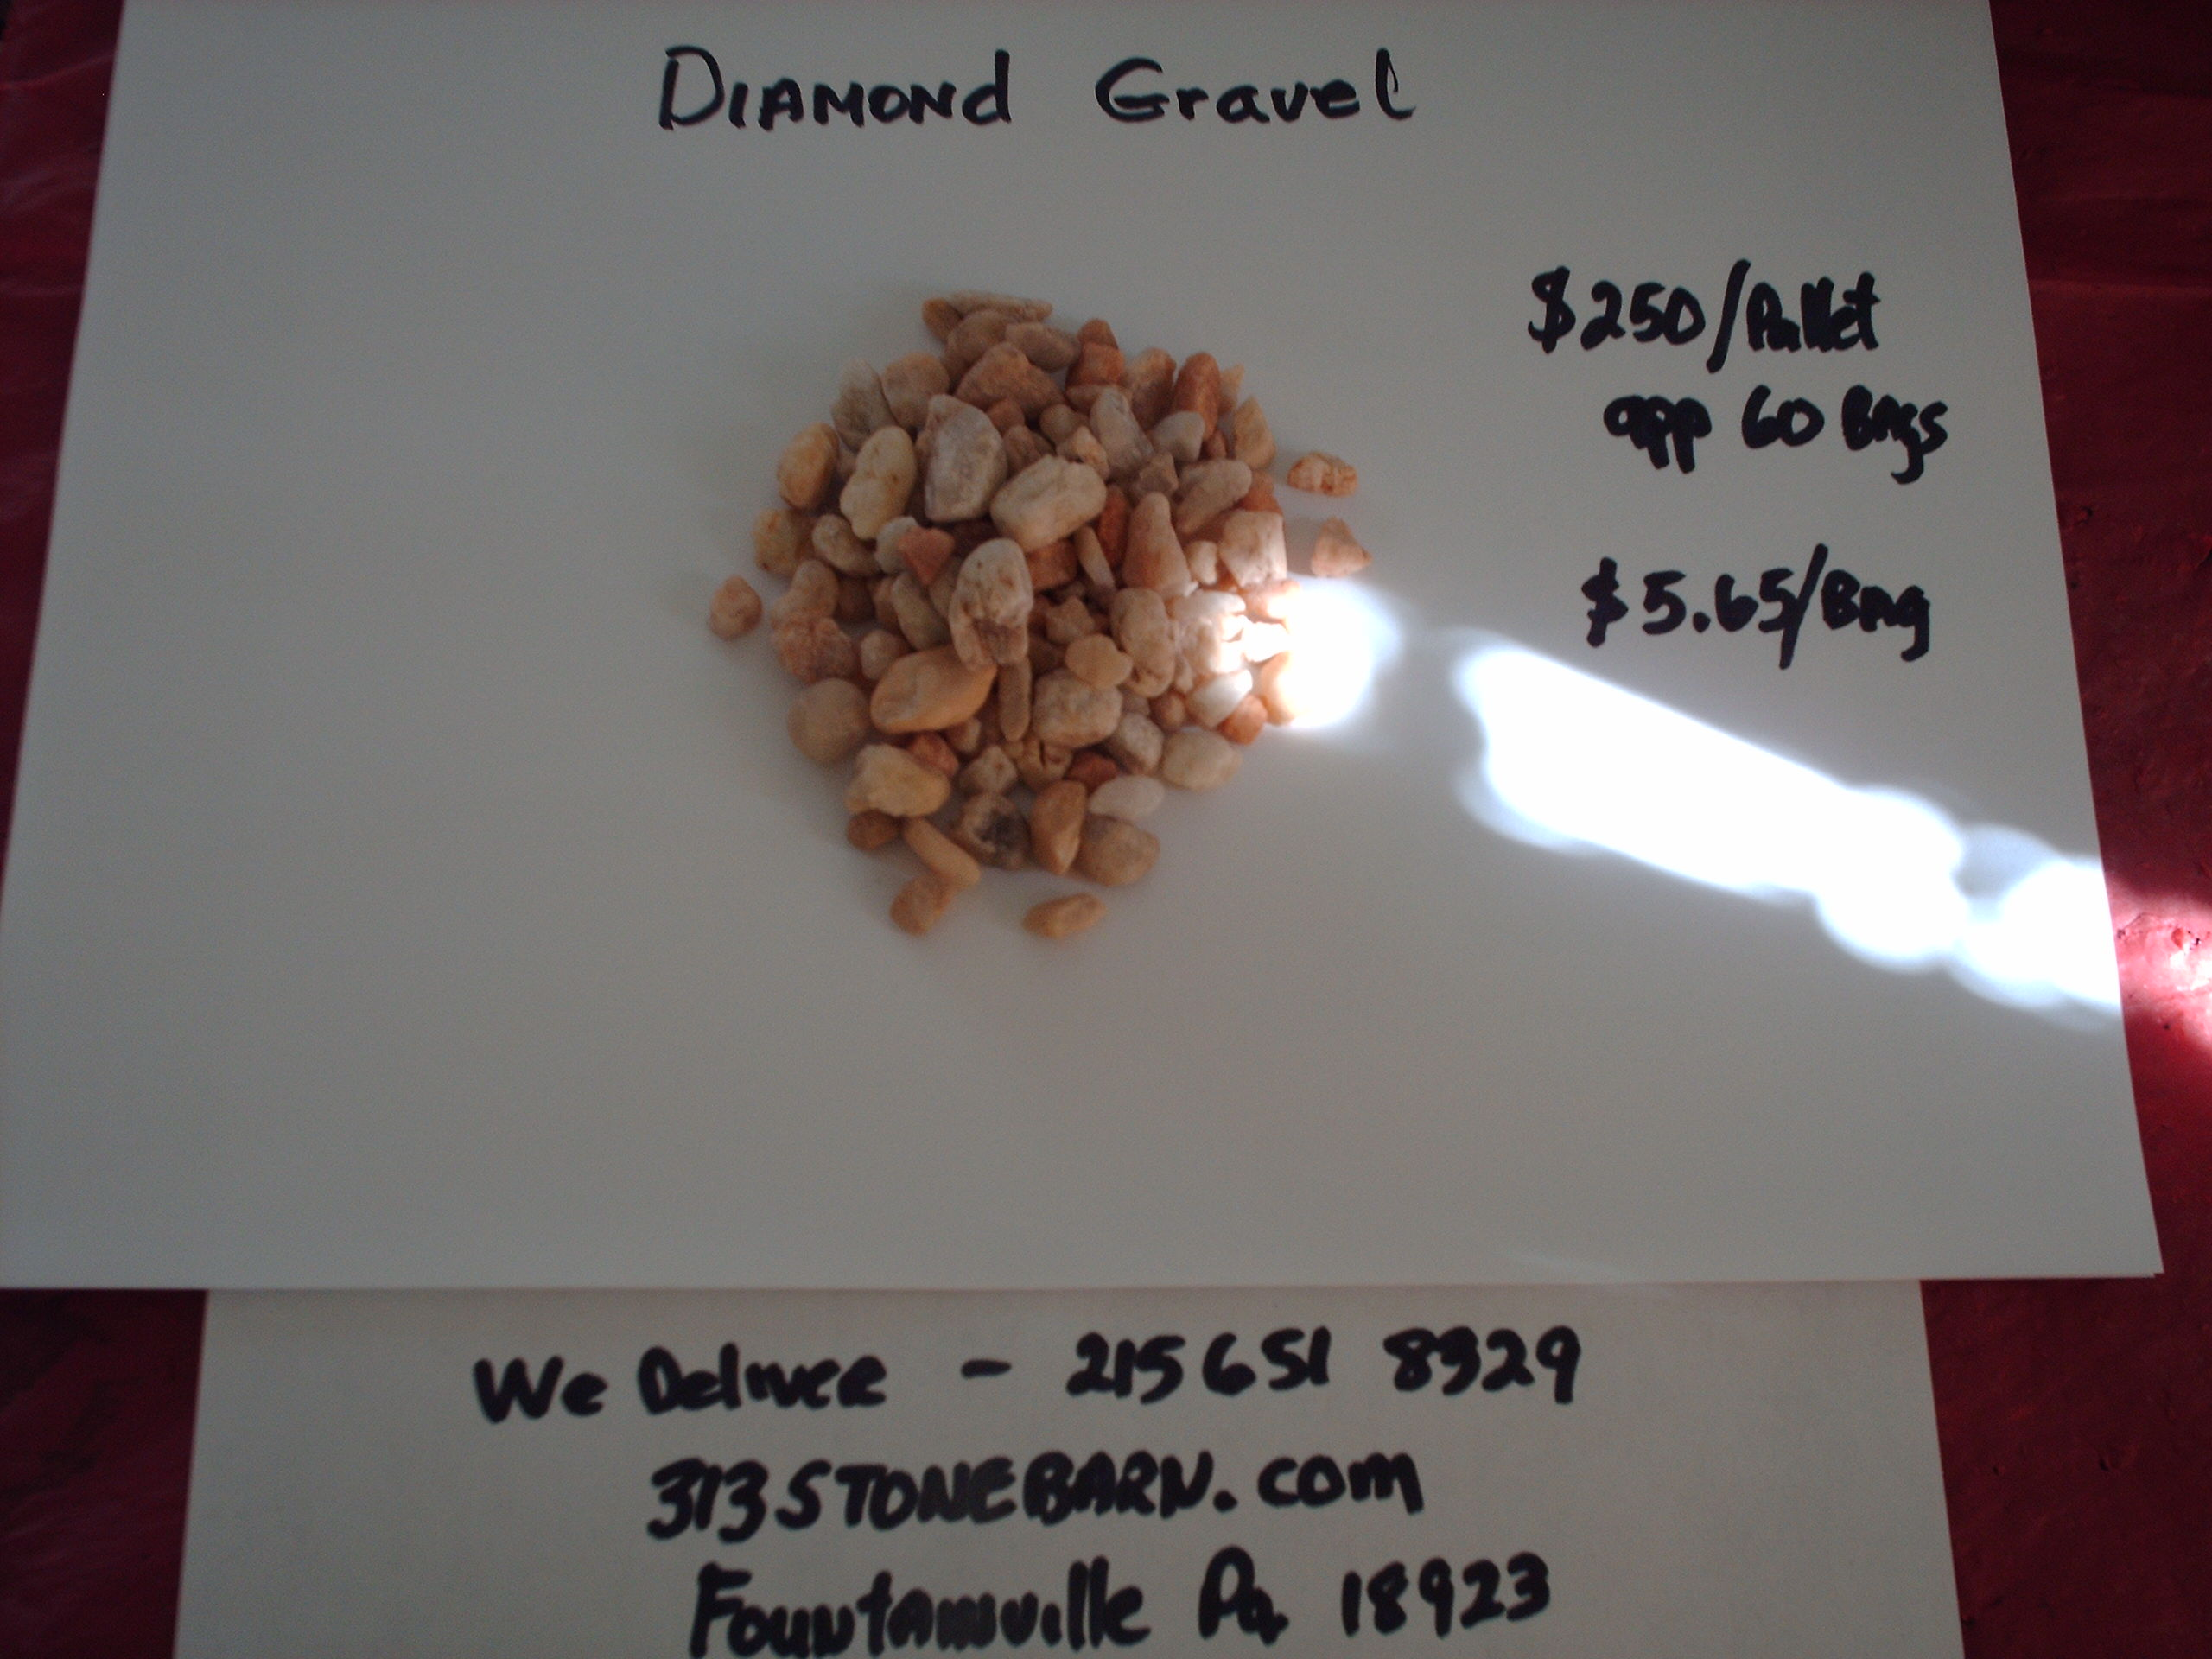 We deliver pallets of these Diamond Gravel chips.